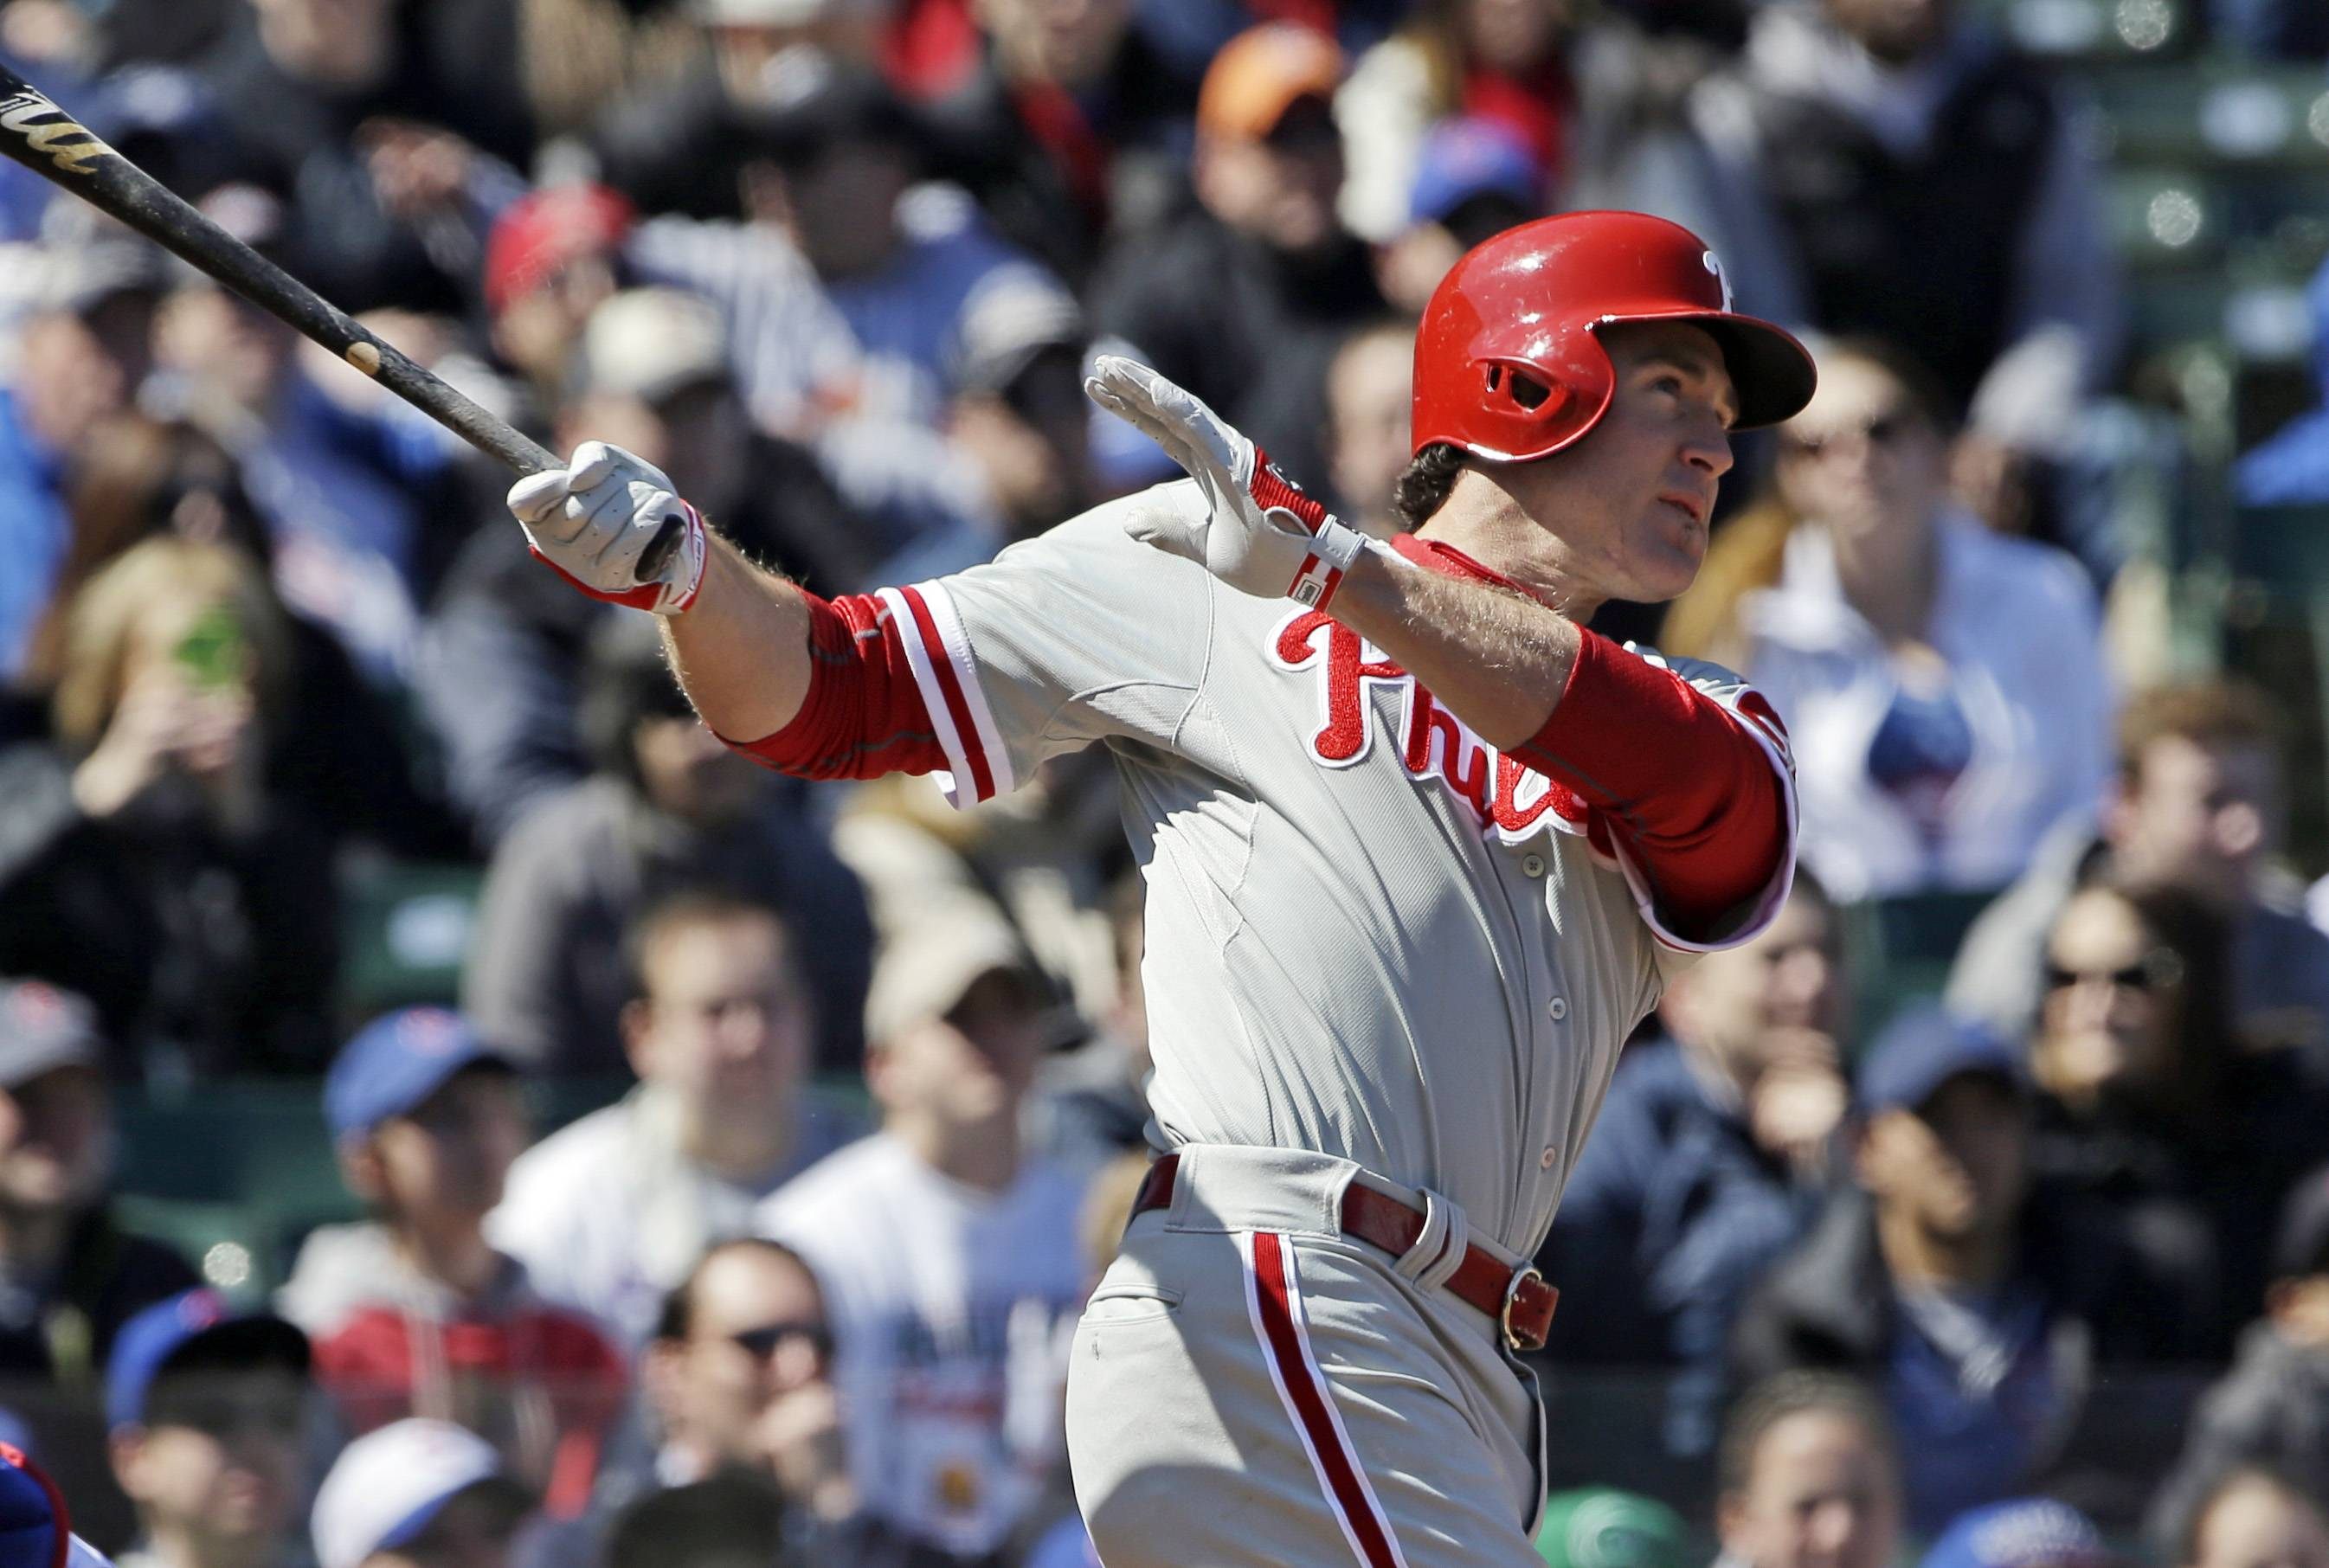 Philadelphia Phillies' Chase Utley watches his solo home run during the first inning of a baseball game against the Chicago Cubs in Chicago, Saturday, April 5, 2014.